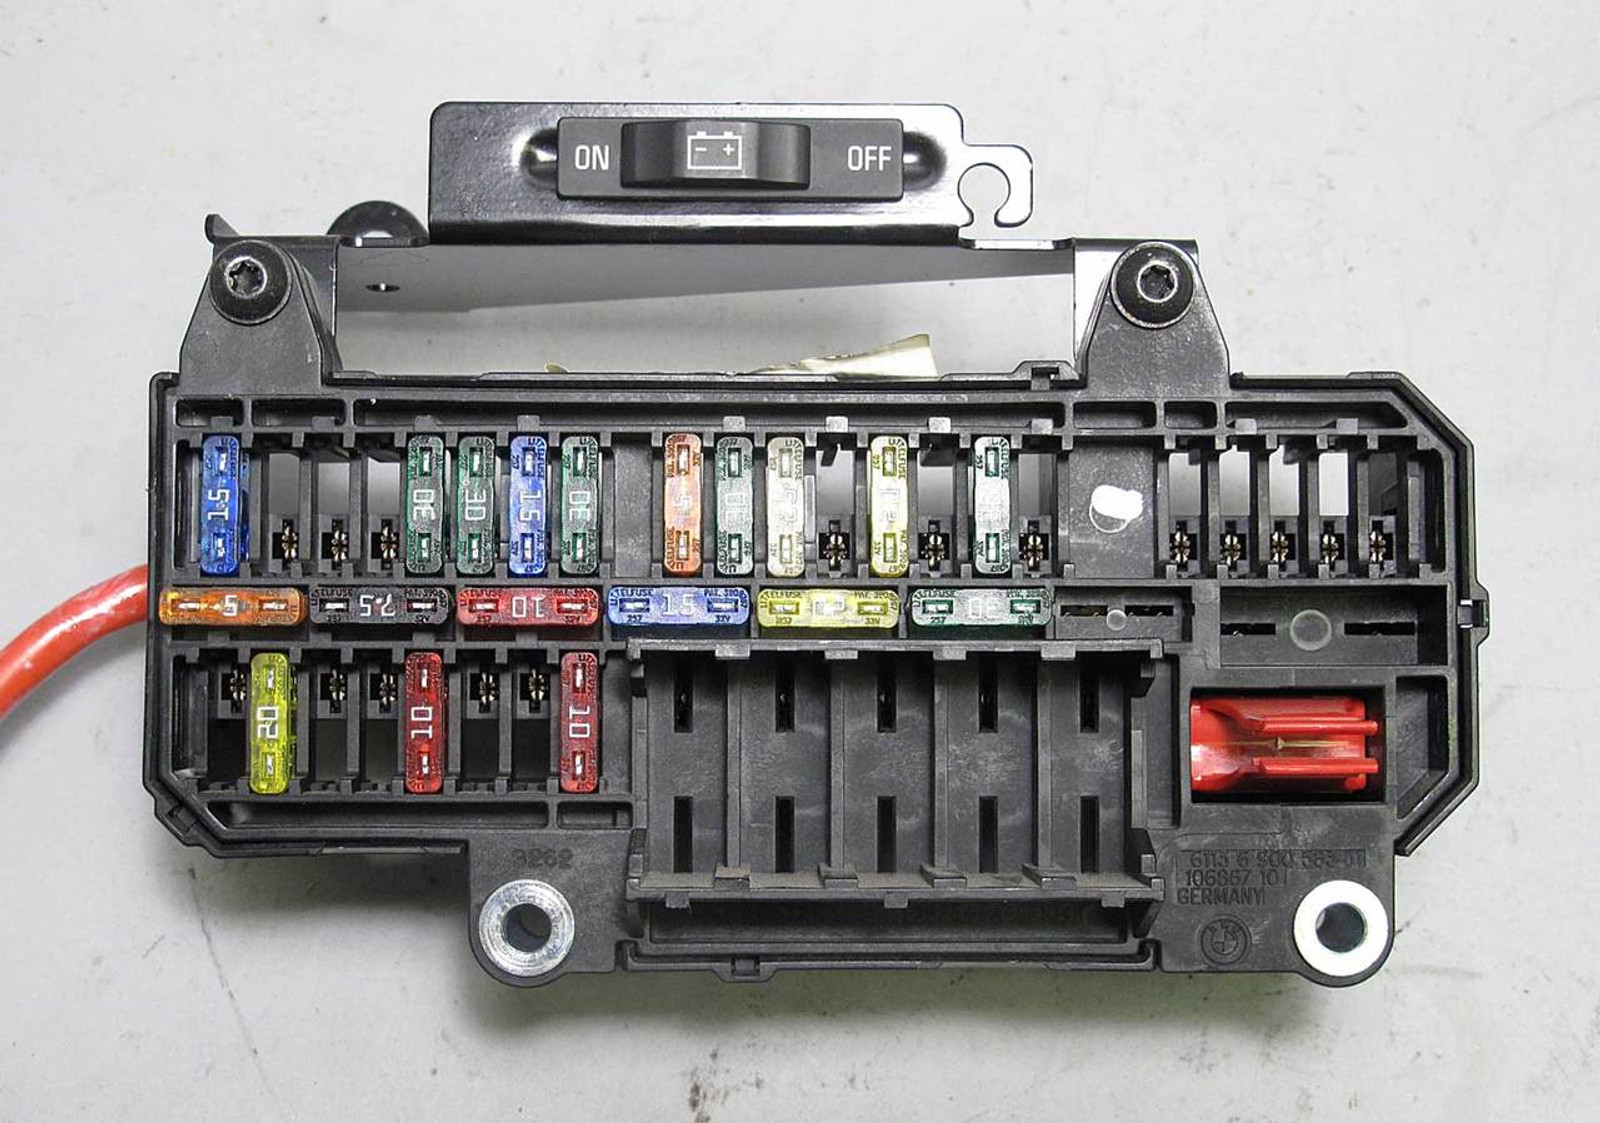 hight resolution of wrg 0912 1997 saturn fuse box locationbmw 740i fuse box location 19